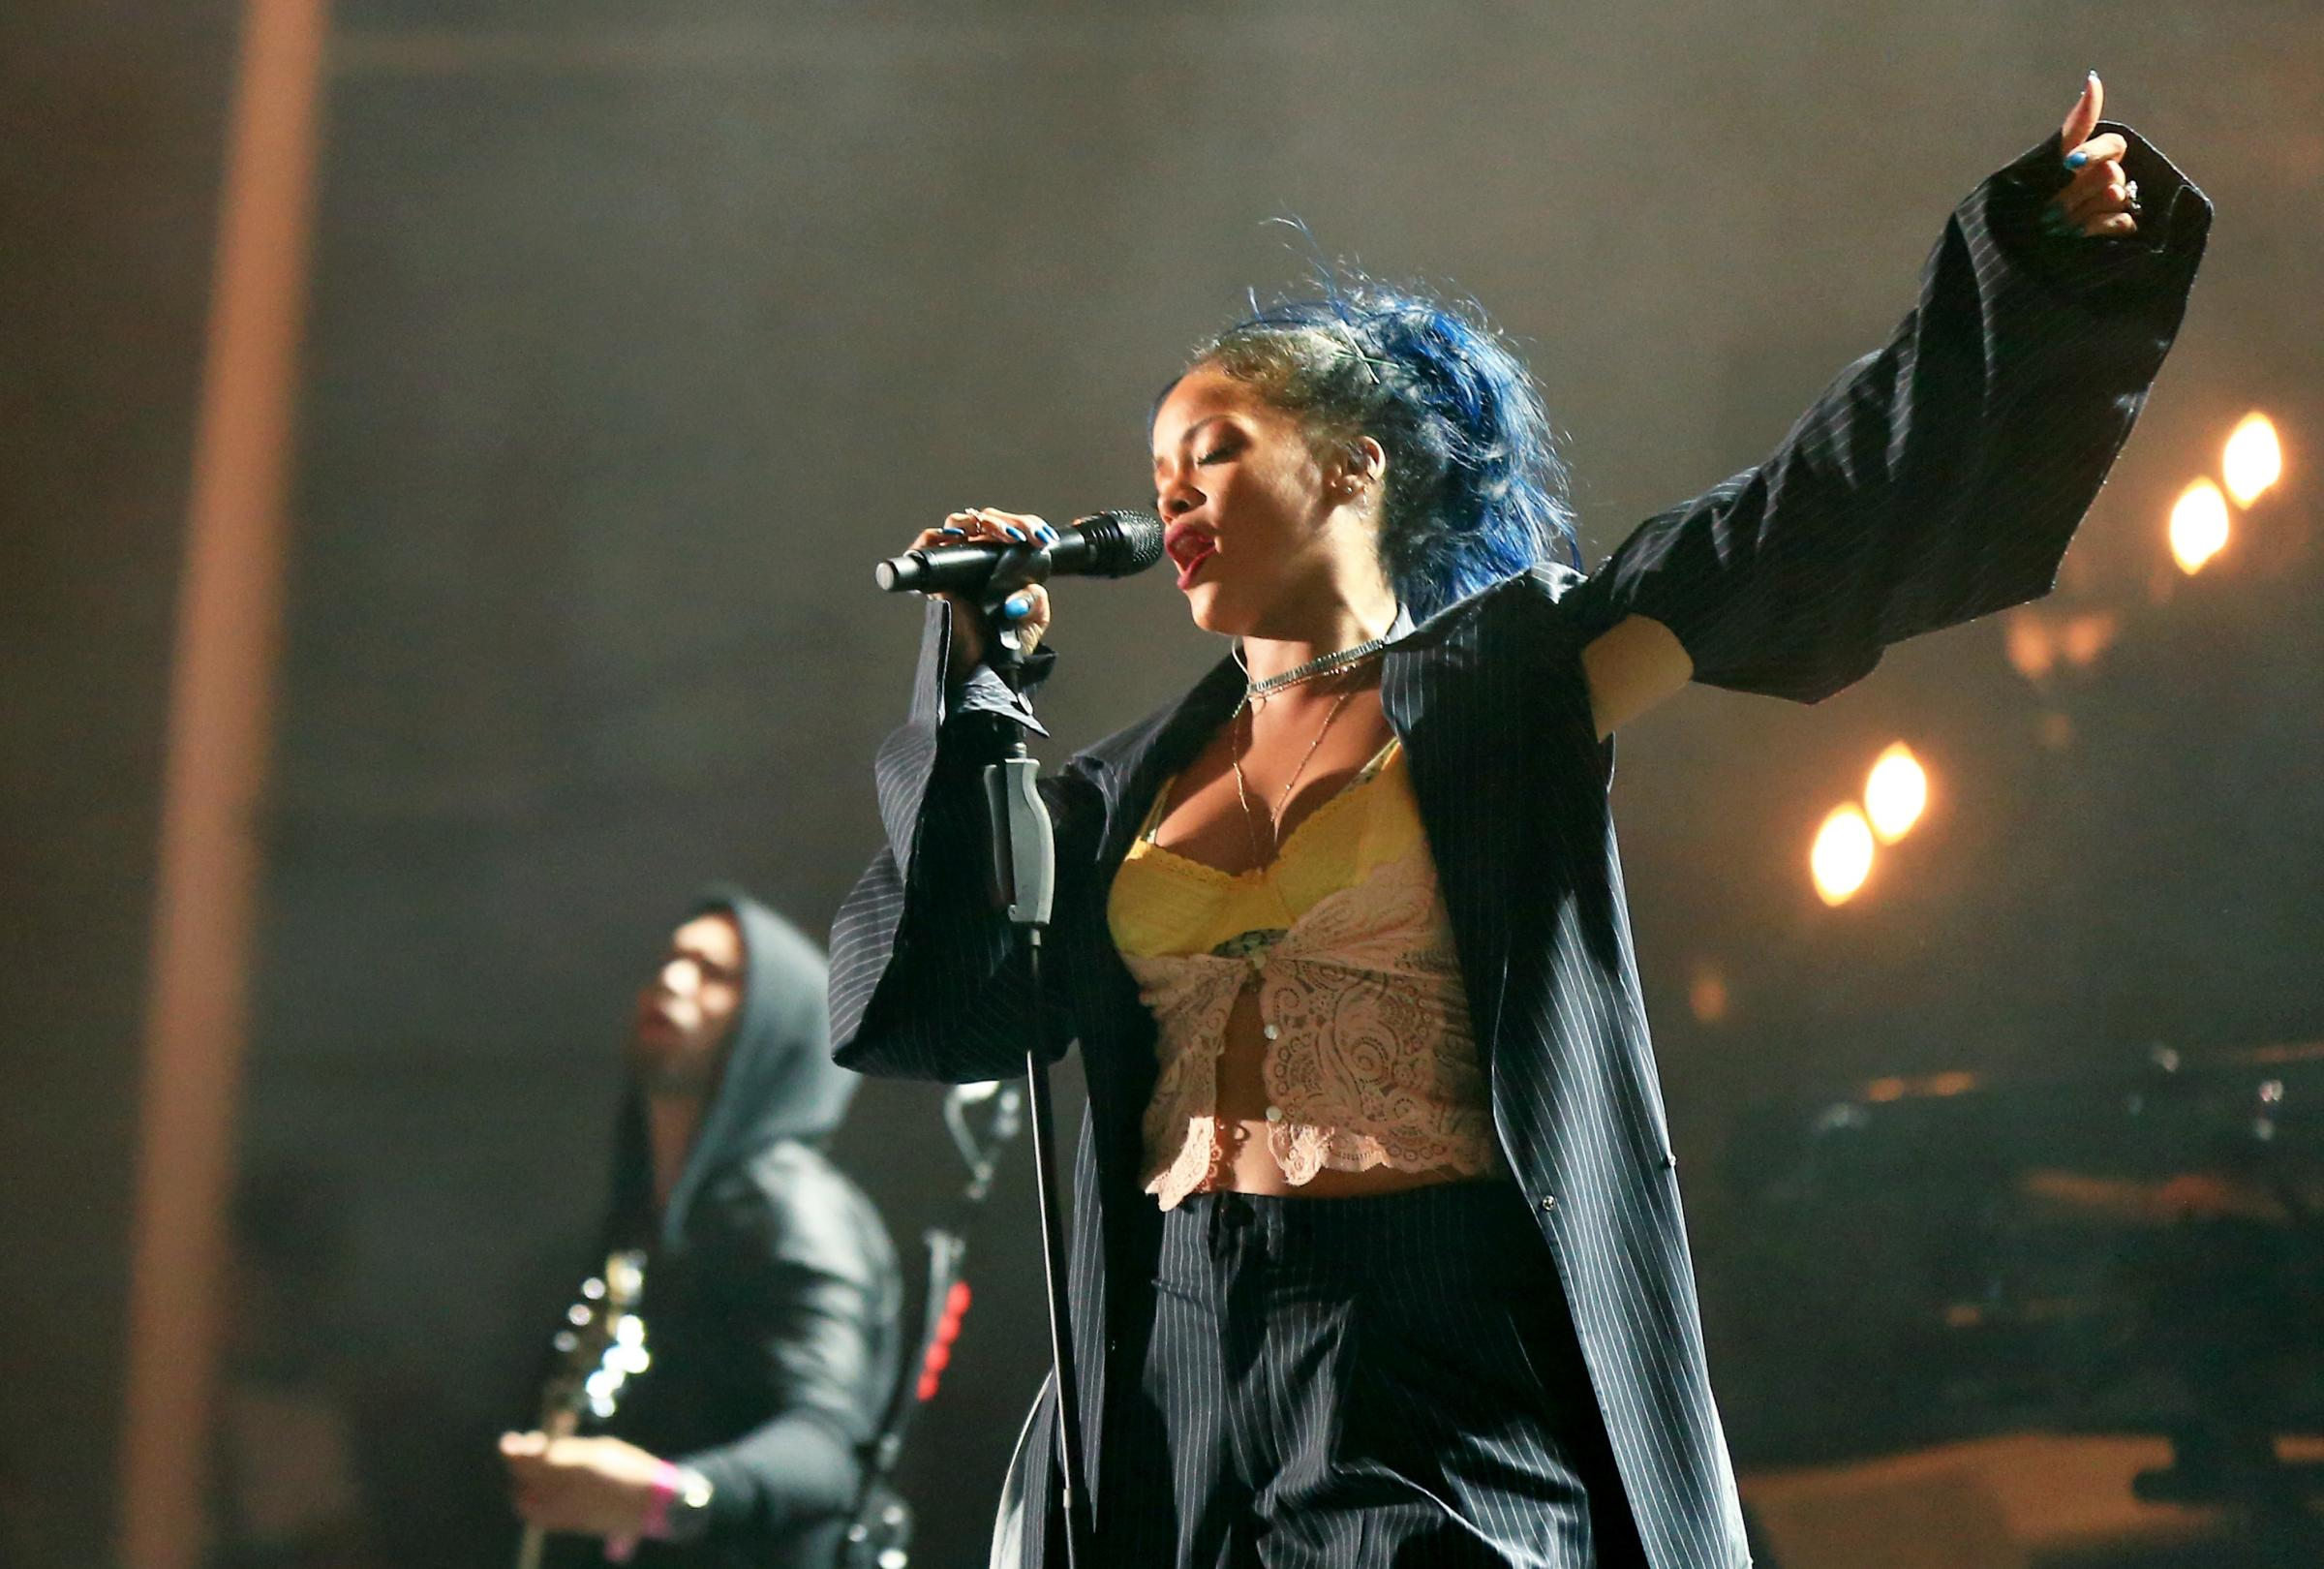 Rihanna announces Hampden Park tour date with support from The Weeknd and Big Sean